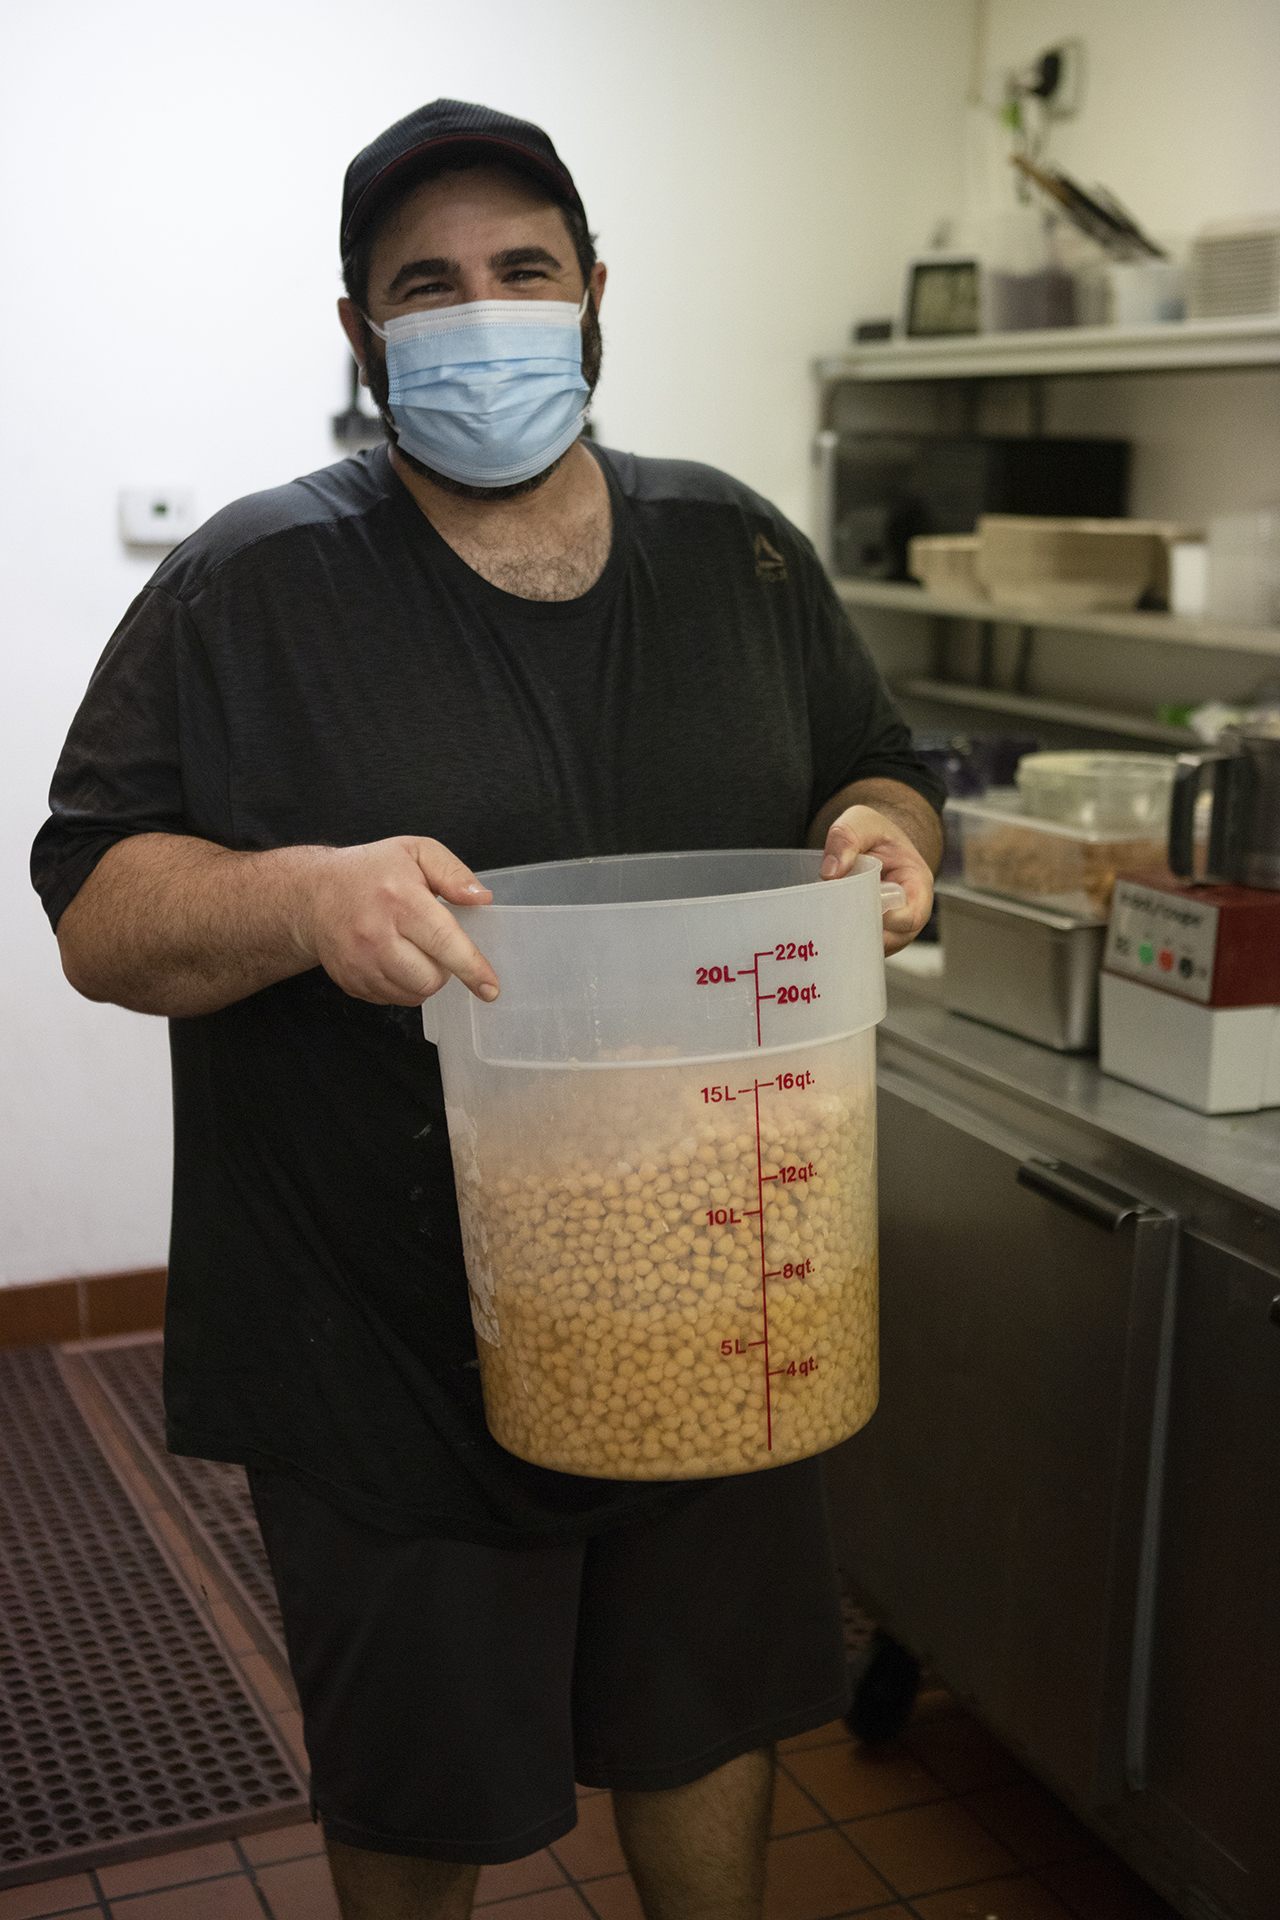 In the Hummus Labs kitchen, chef Joseph Badaro is pictured wearing a black shirt, black hat and a light blue mask. Chef is holding a large container filled with chickpeas.